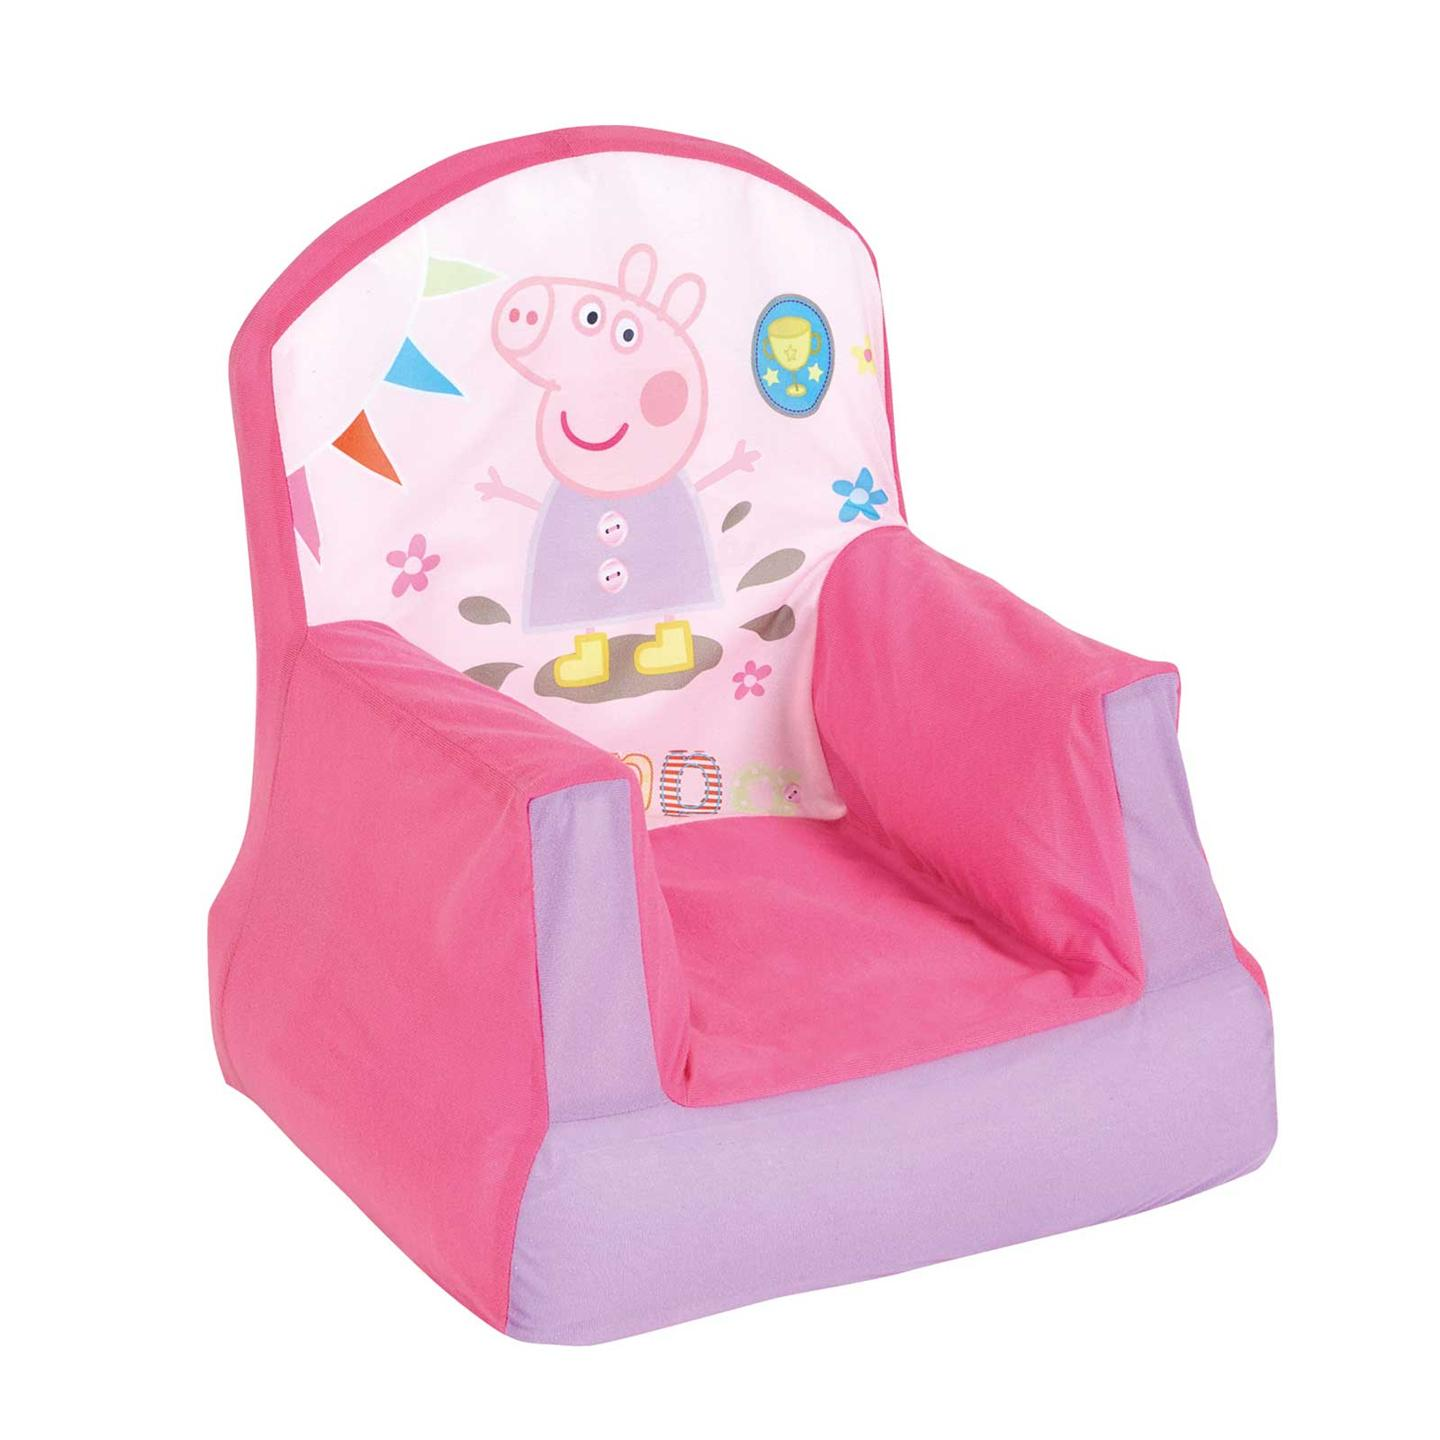 Peppa pig bedding and matching curtains memsaheb peppa pig bedding and matching curtains nrtradiant com amipublicfo Images